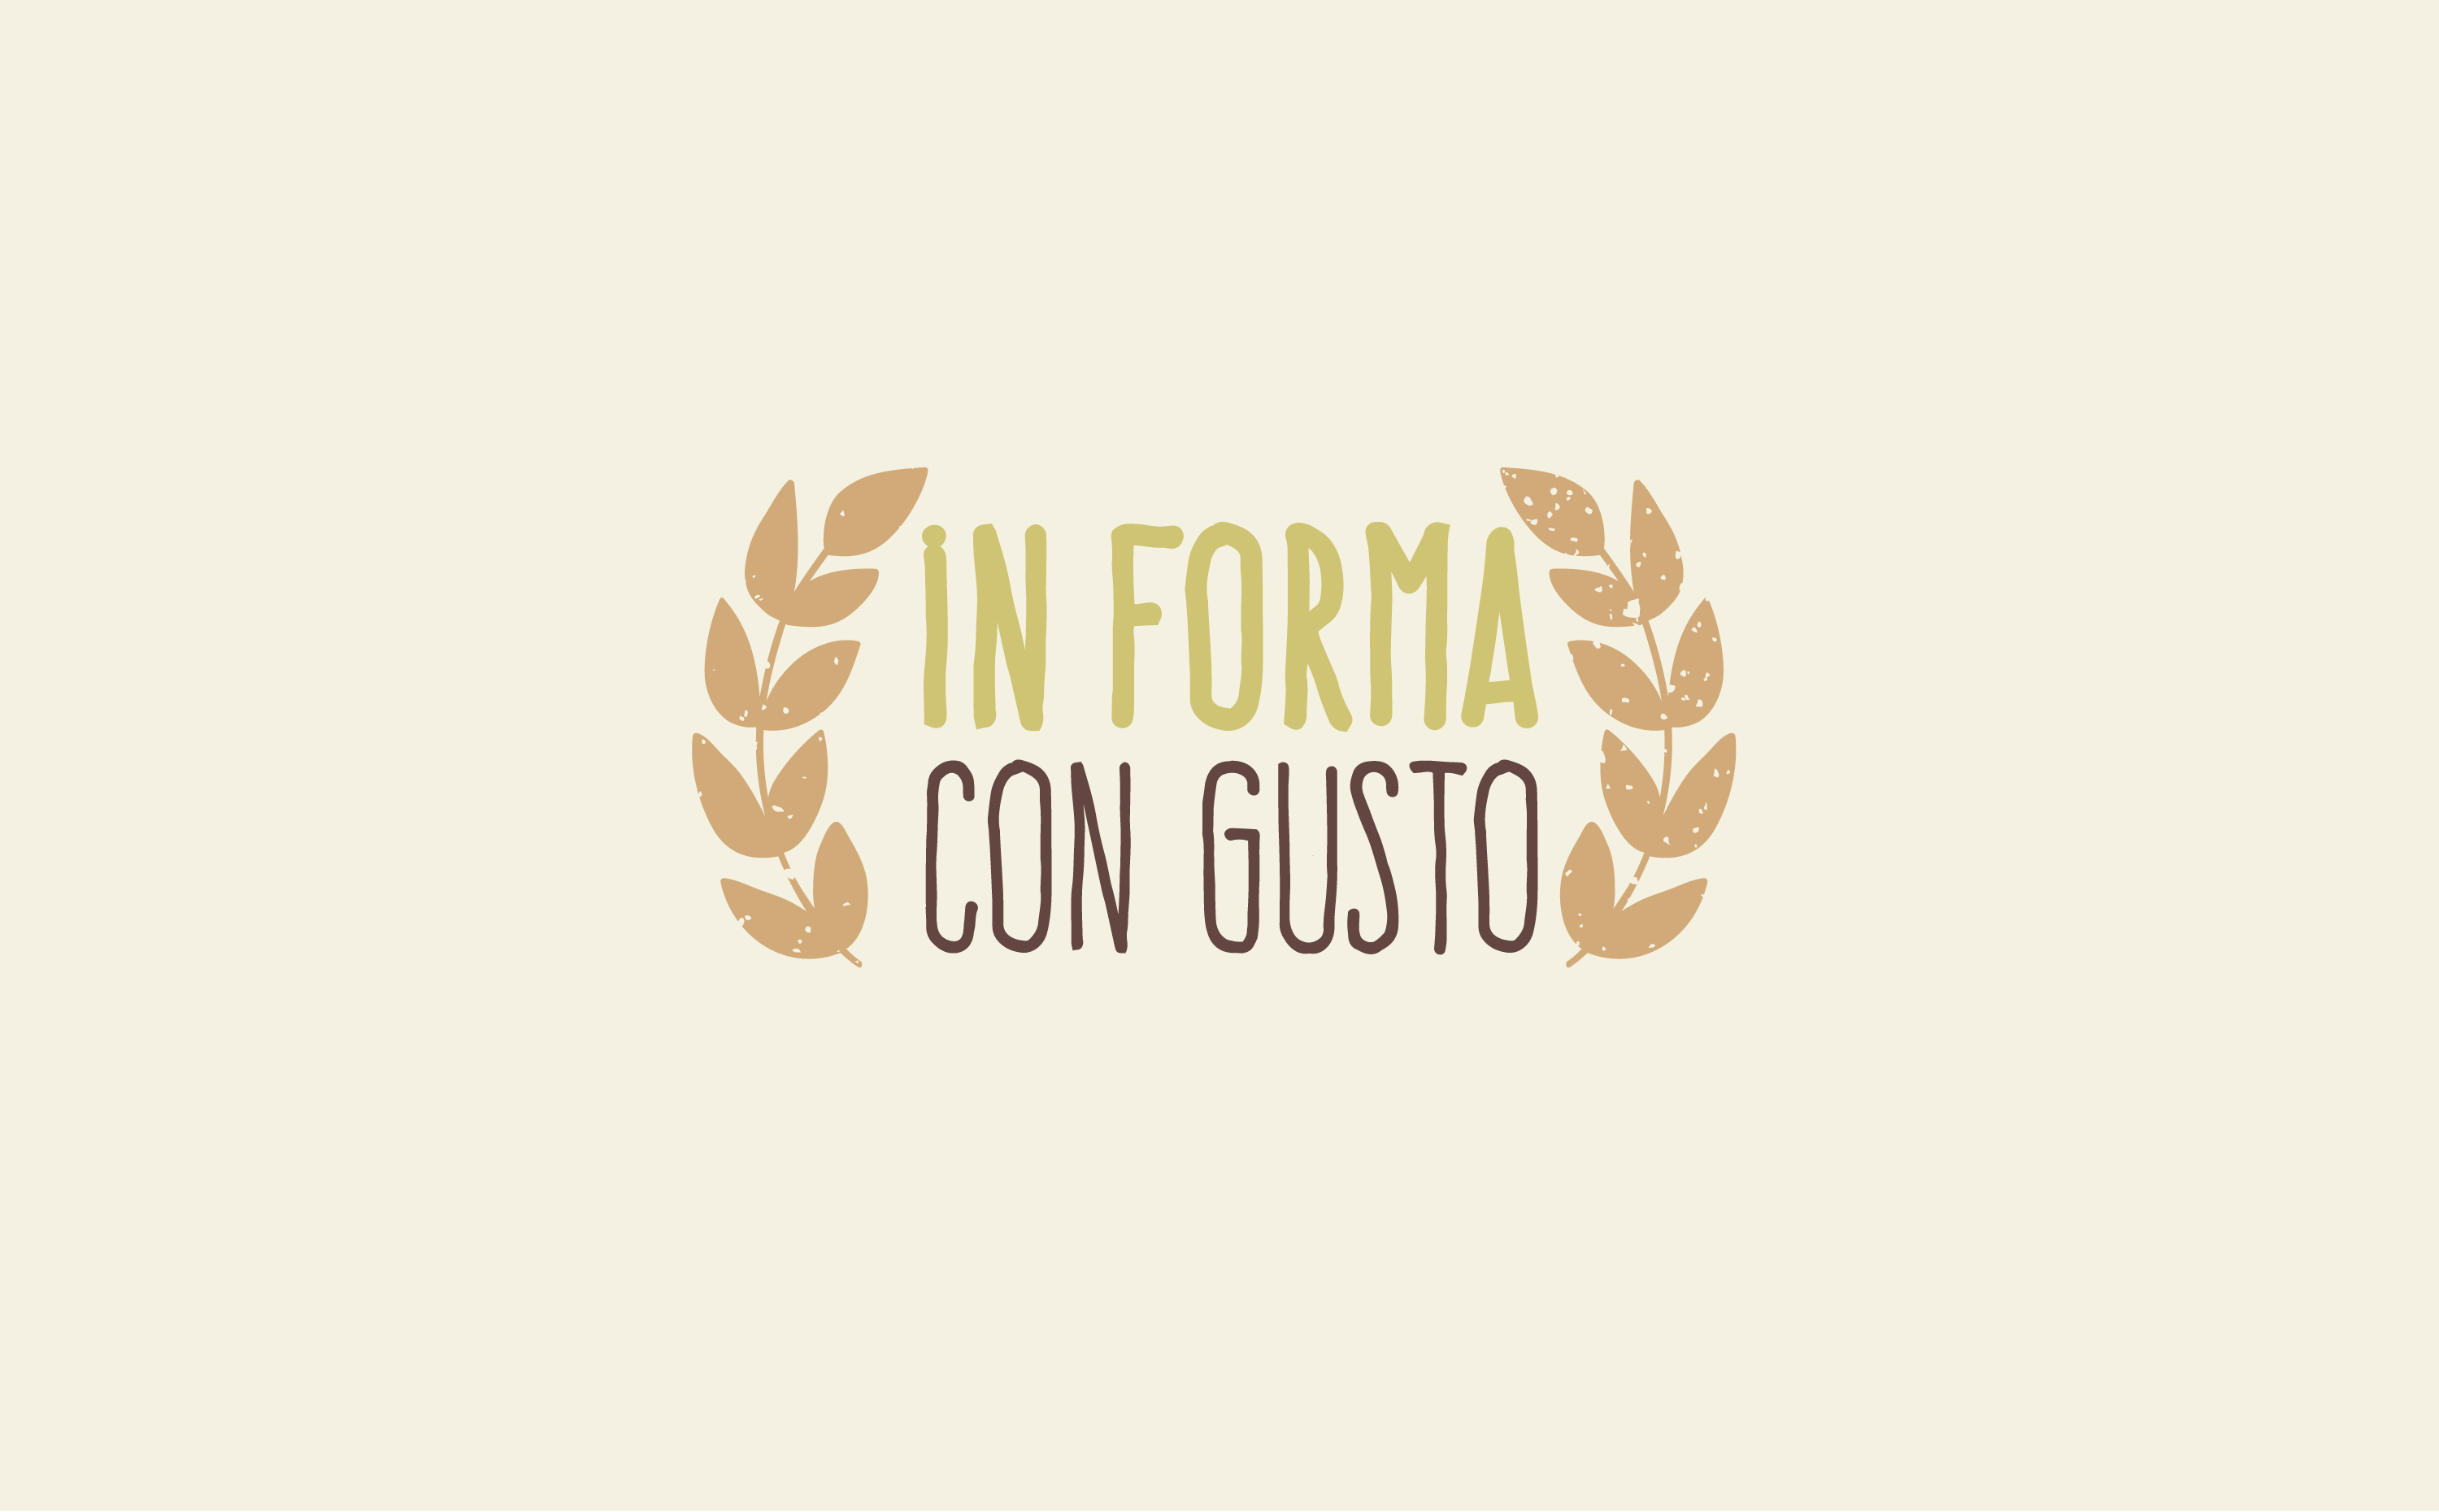 In forma con gusto